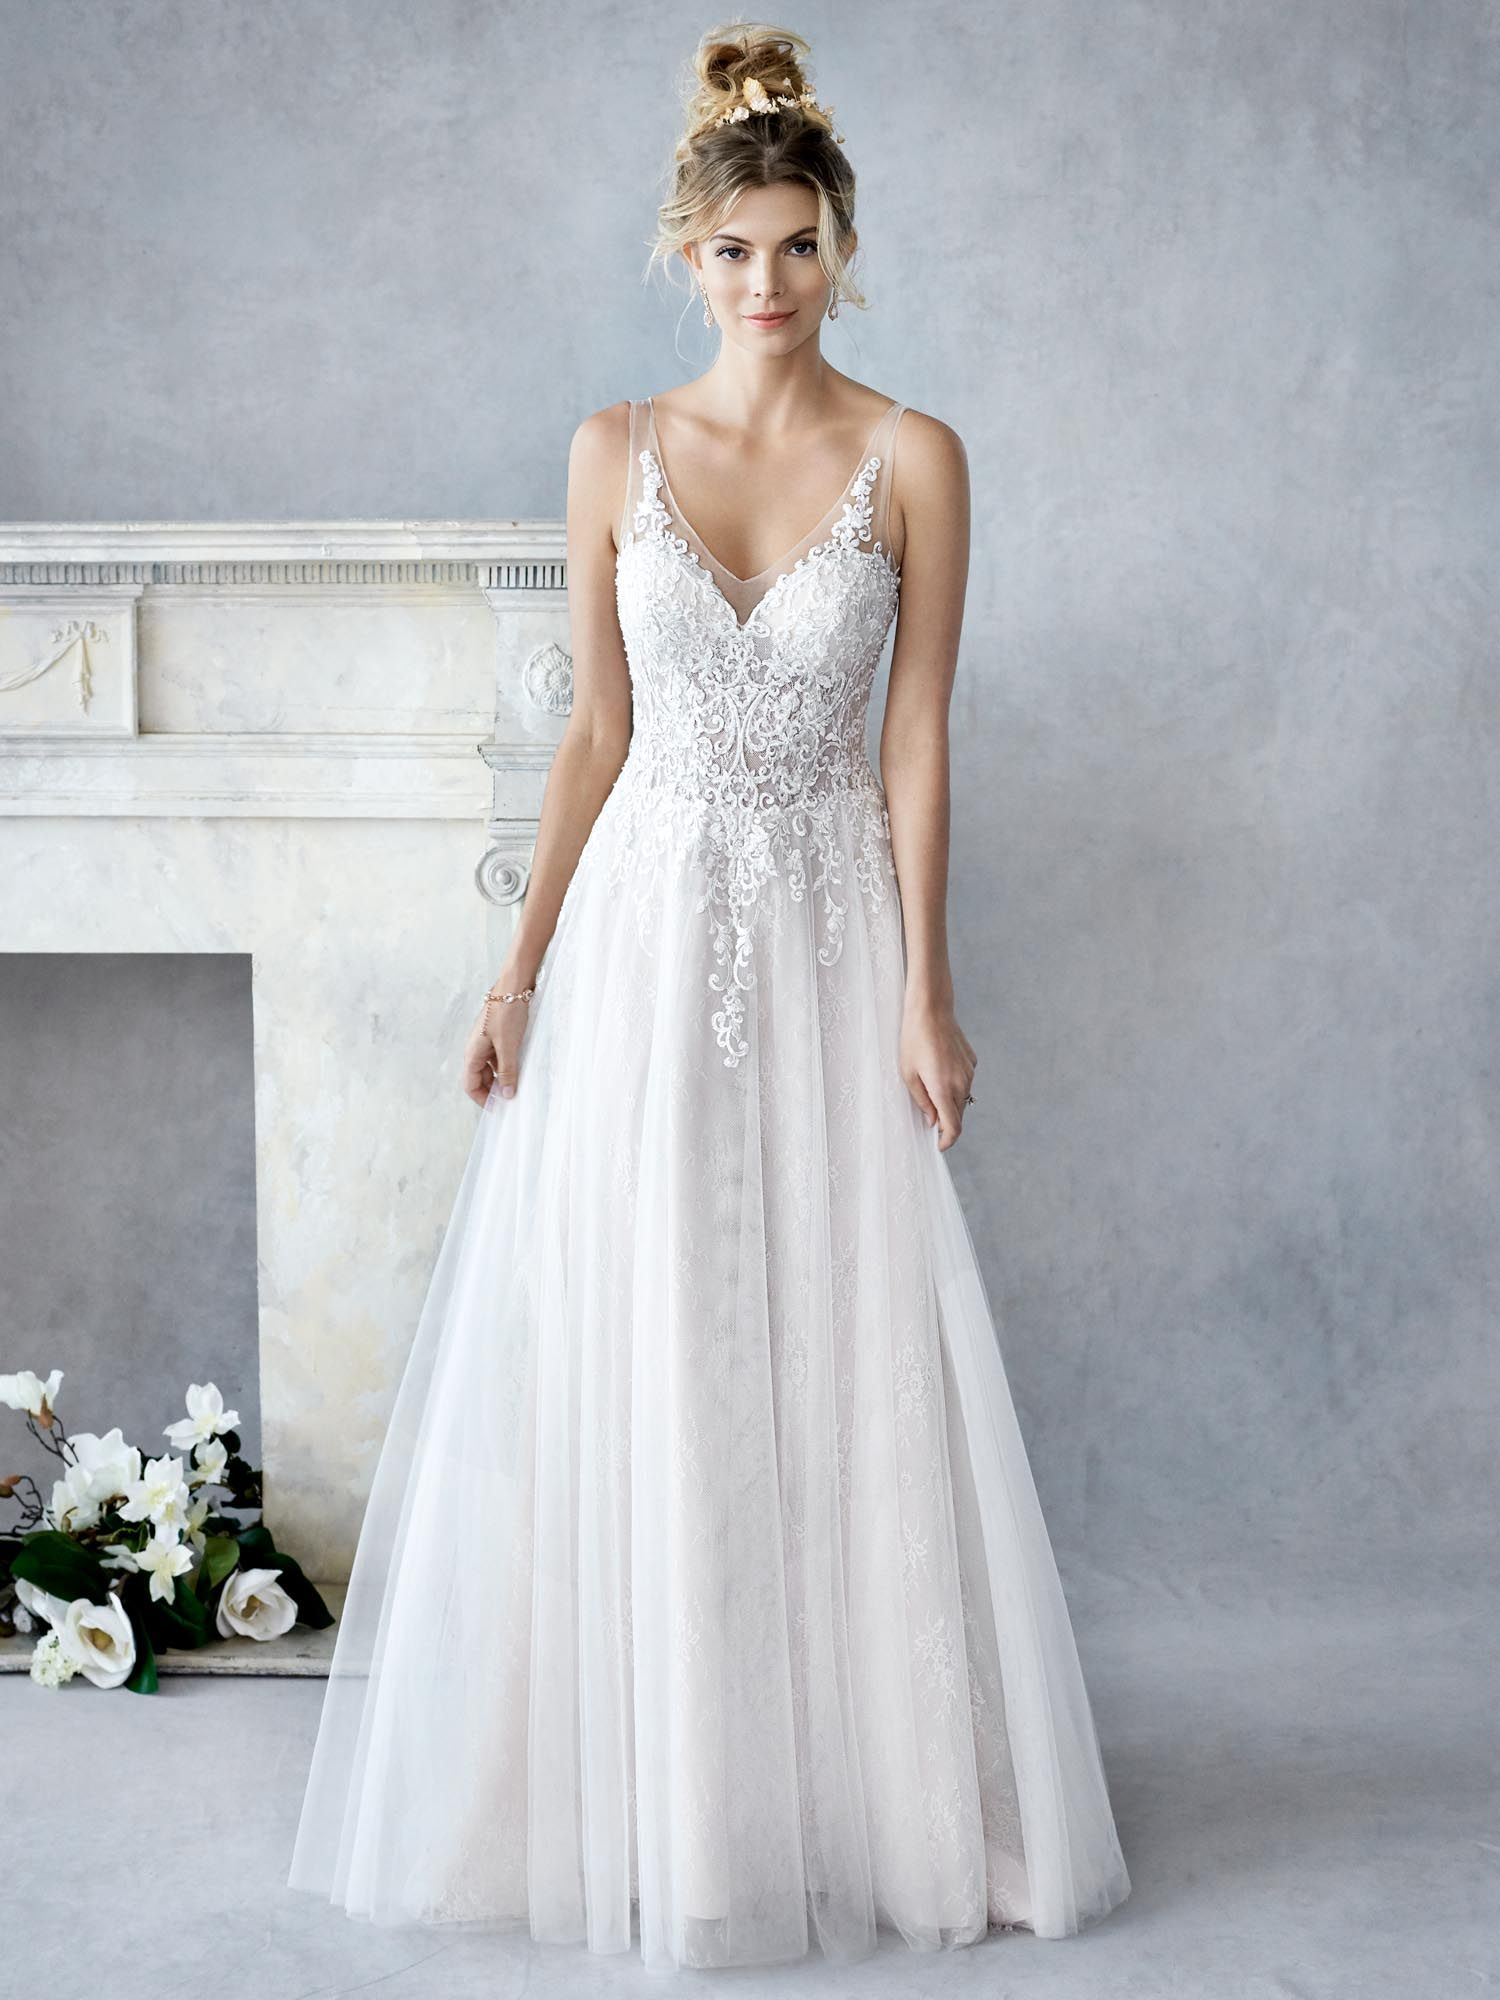 SALE! Short wedding dress decorated with Chantilly lace and hand-embroidered.